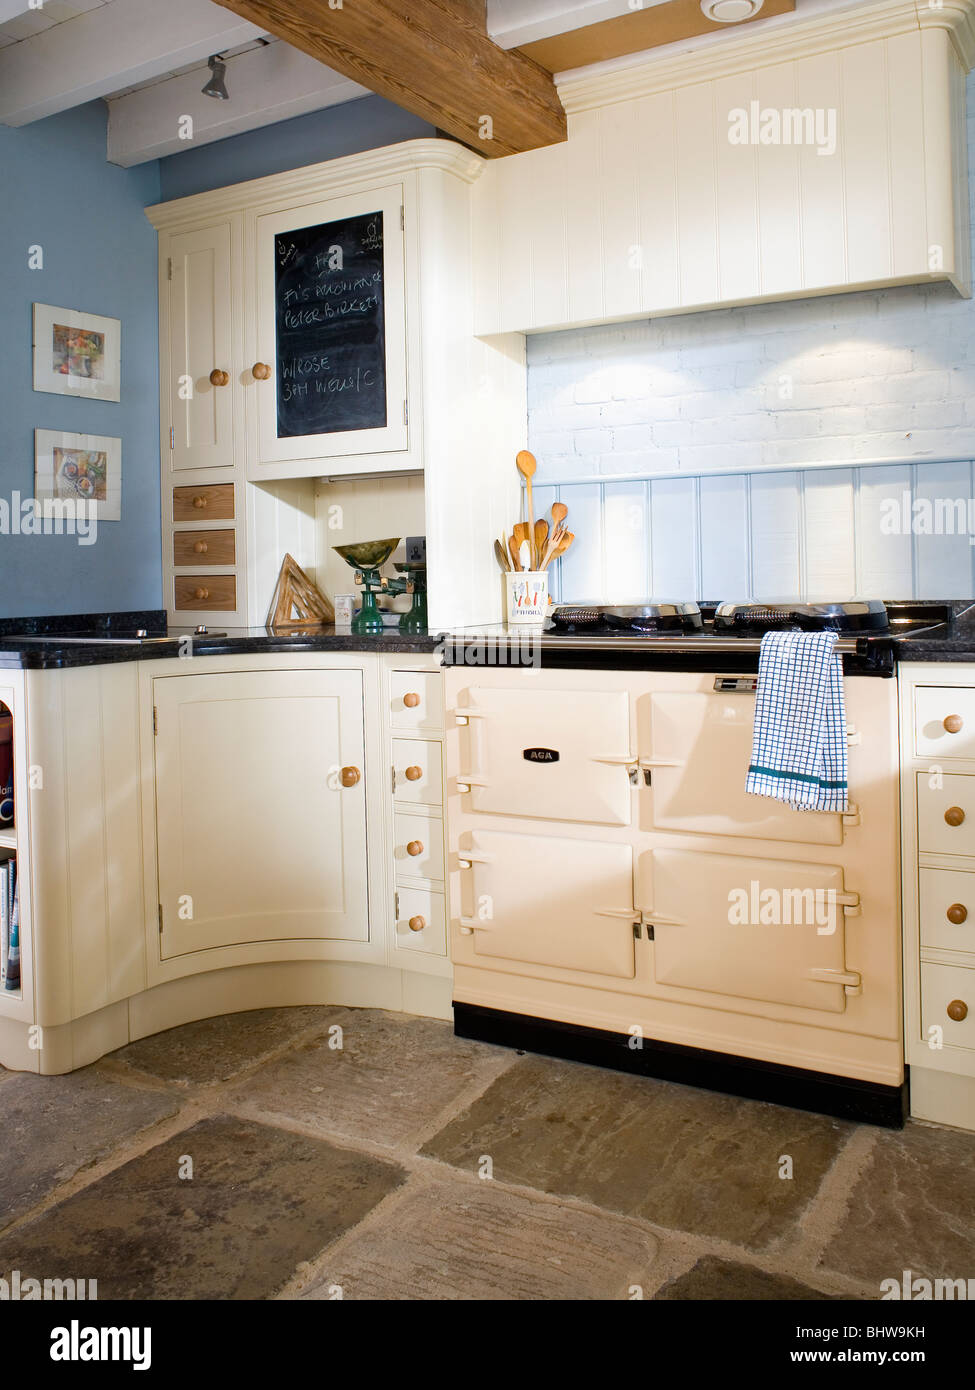 Cream Aga Oven In Pastel Blue Country Kitchen With Flagstone ...